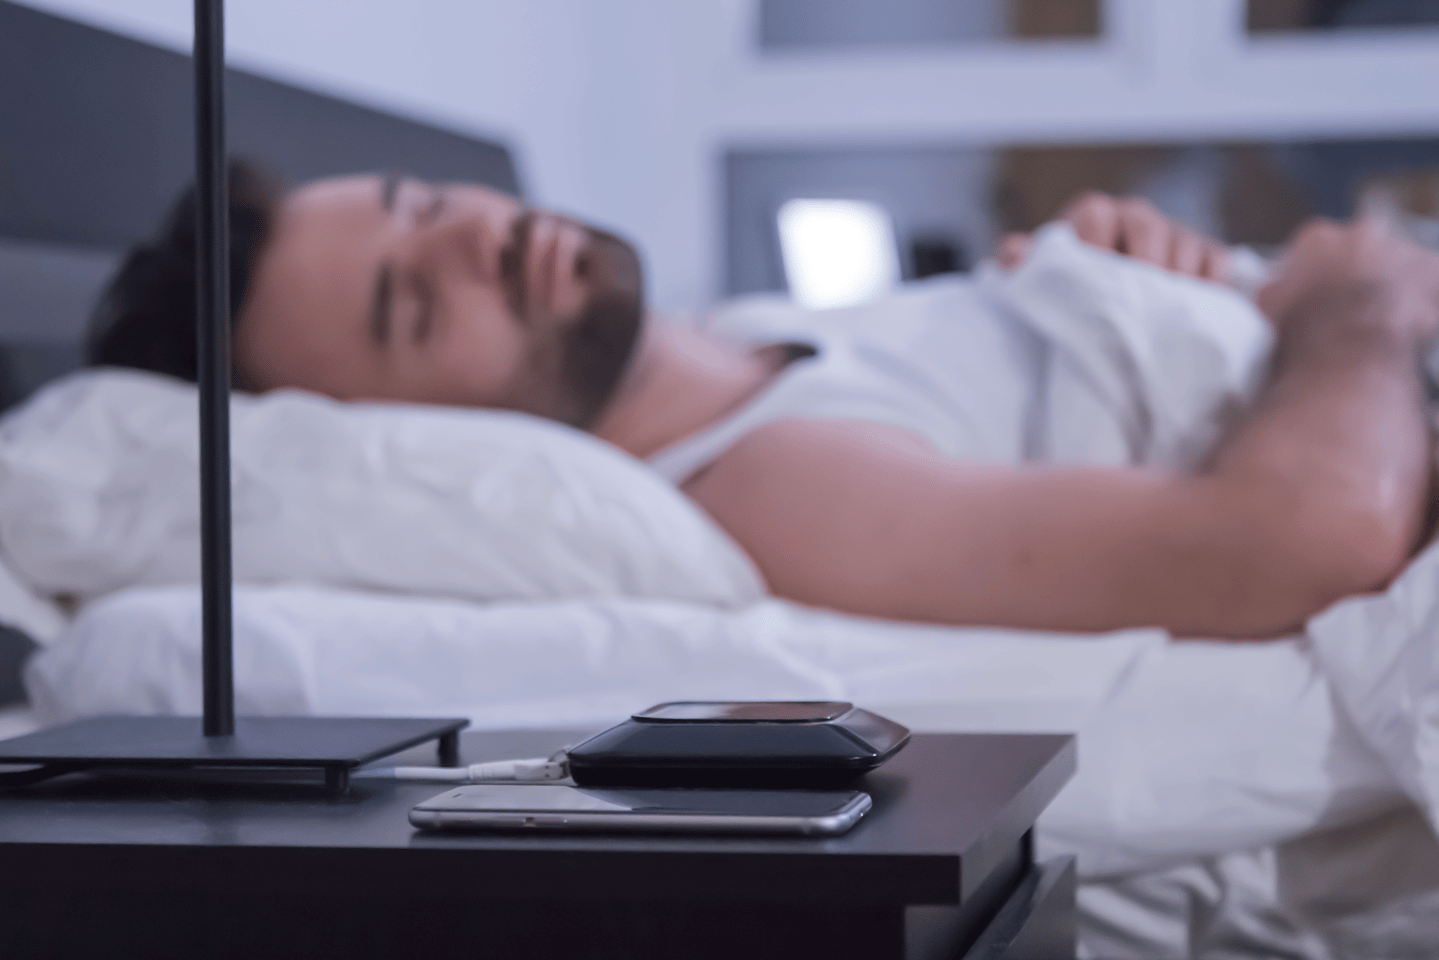 A fiber-optics band fits under a mattress and tracks metrics such as heartbeat, breathing and room temperature through the night